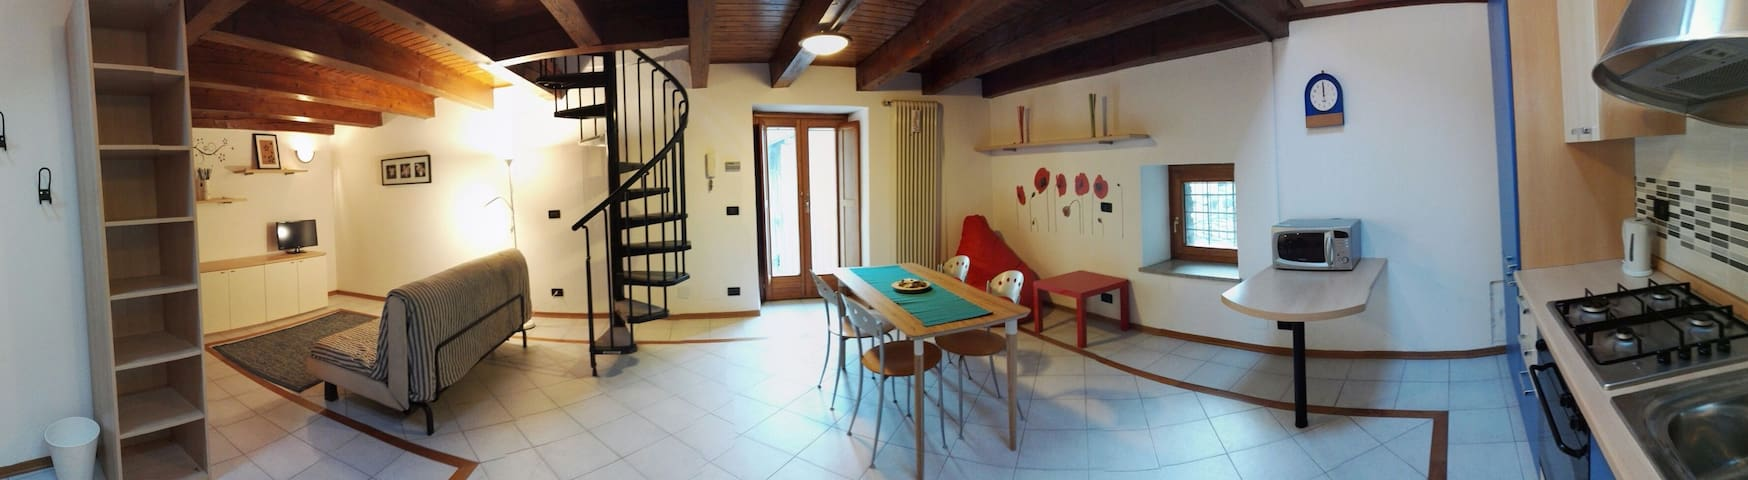 "Appartamento ""La Tor"" a Donnas - Donnas, Valle d'Aosta, IT - Apartment"